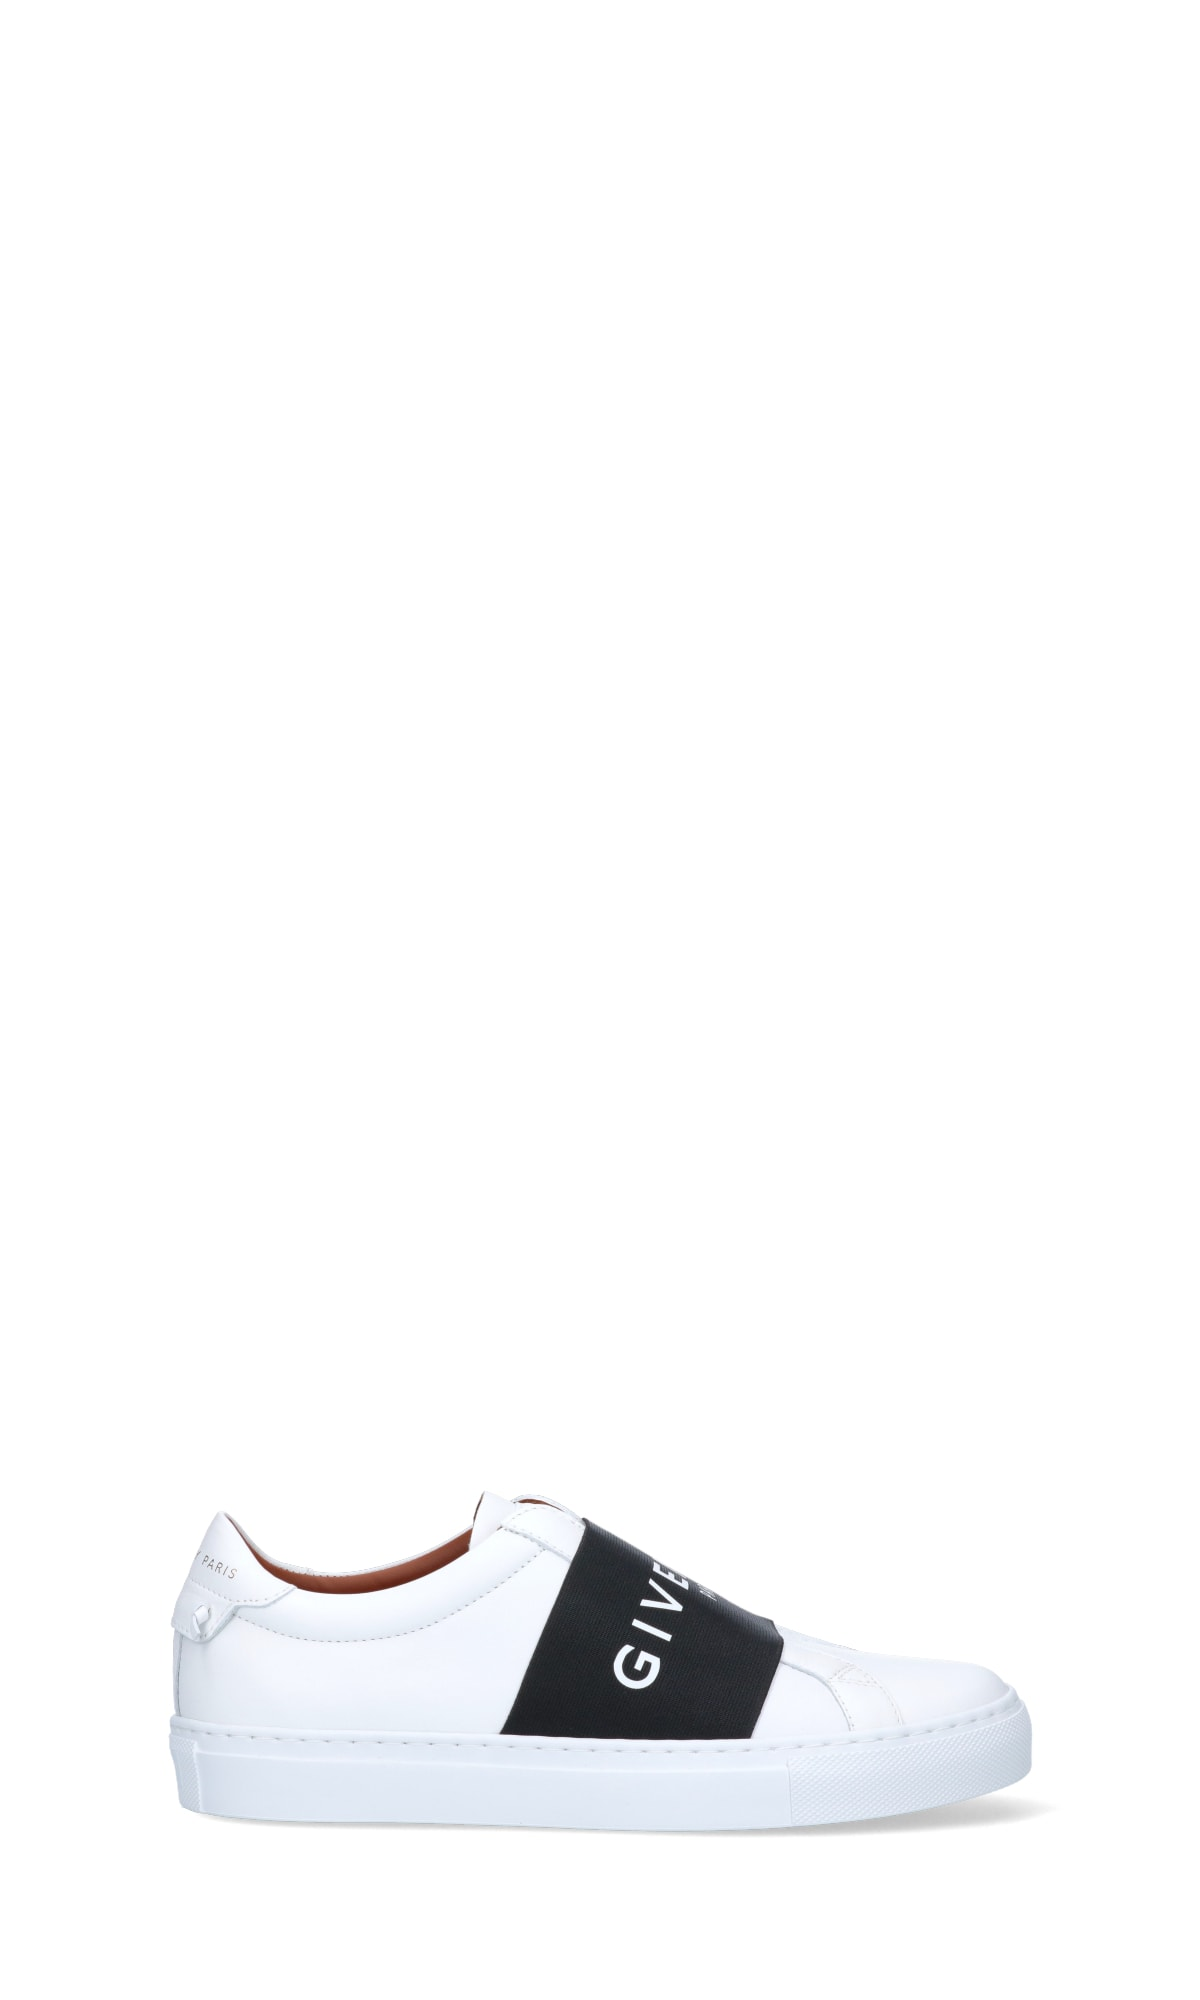 Givenchy Leathers SNEAKERS